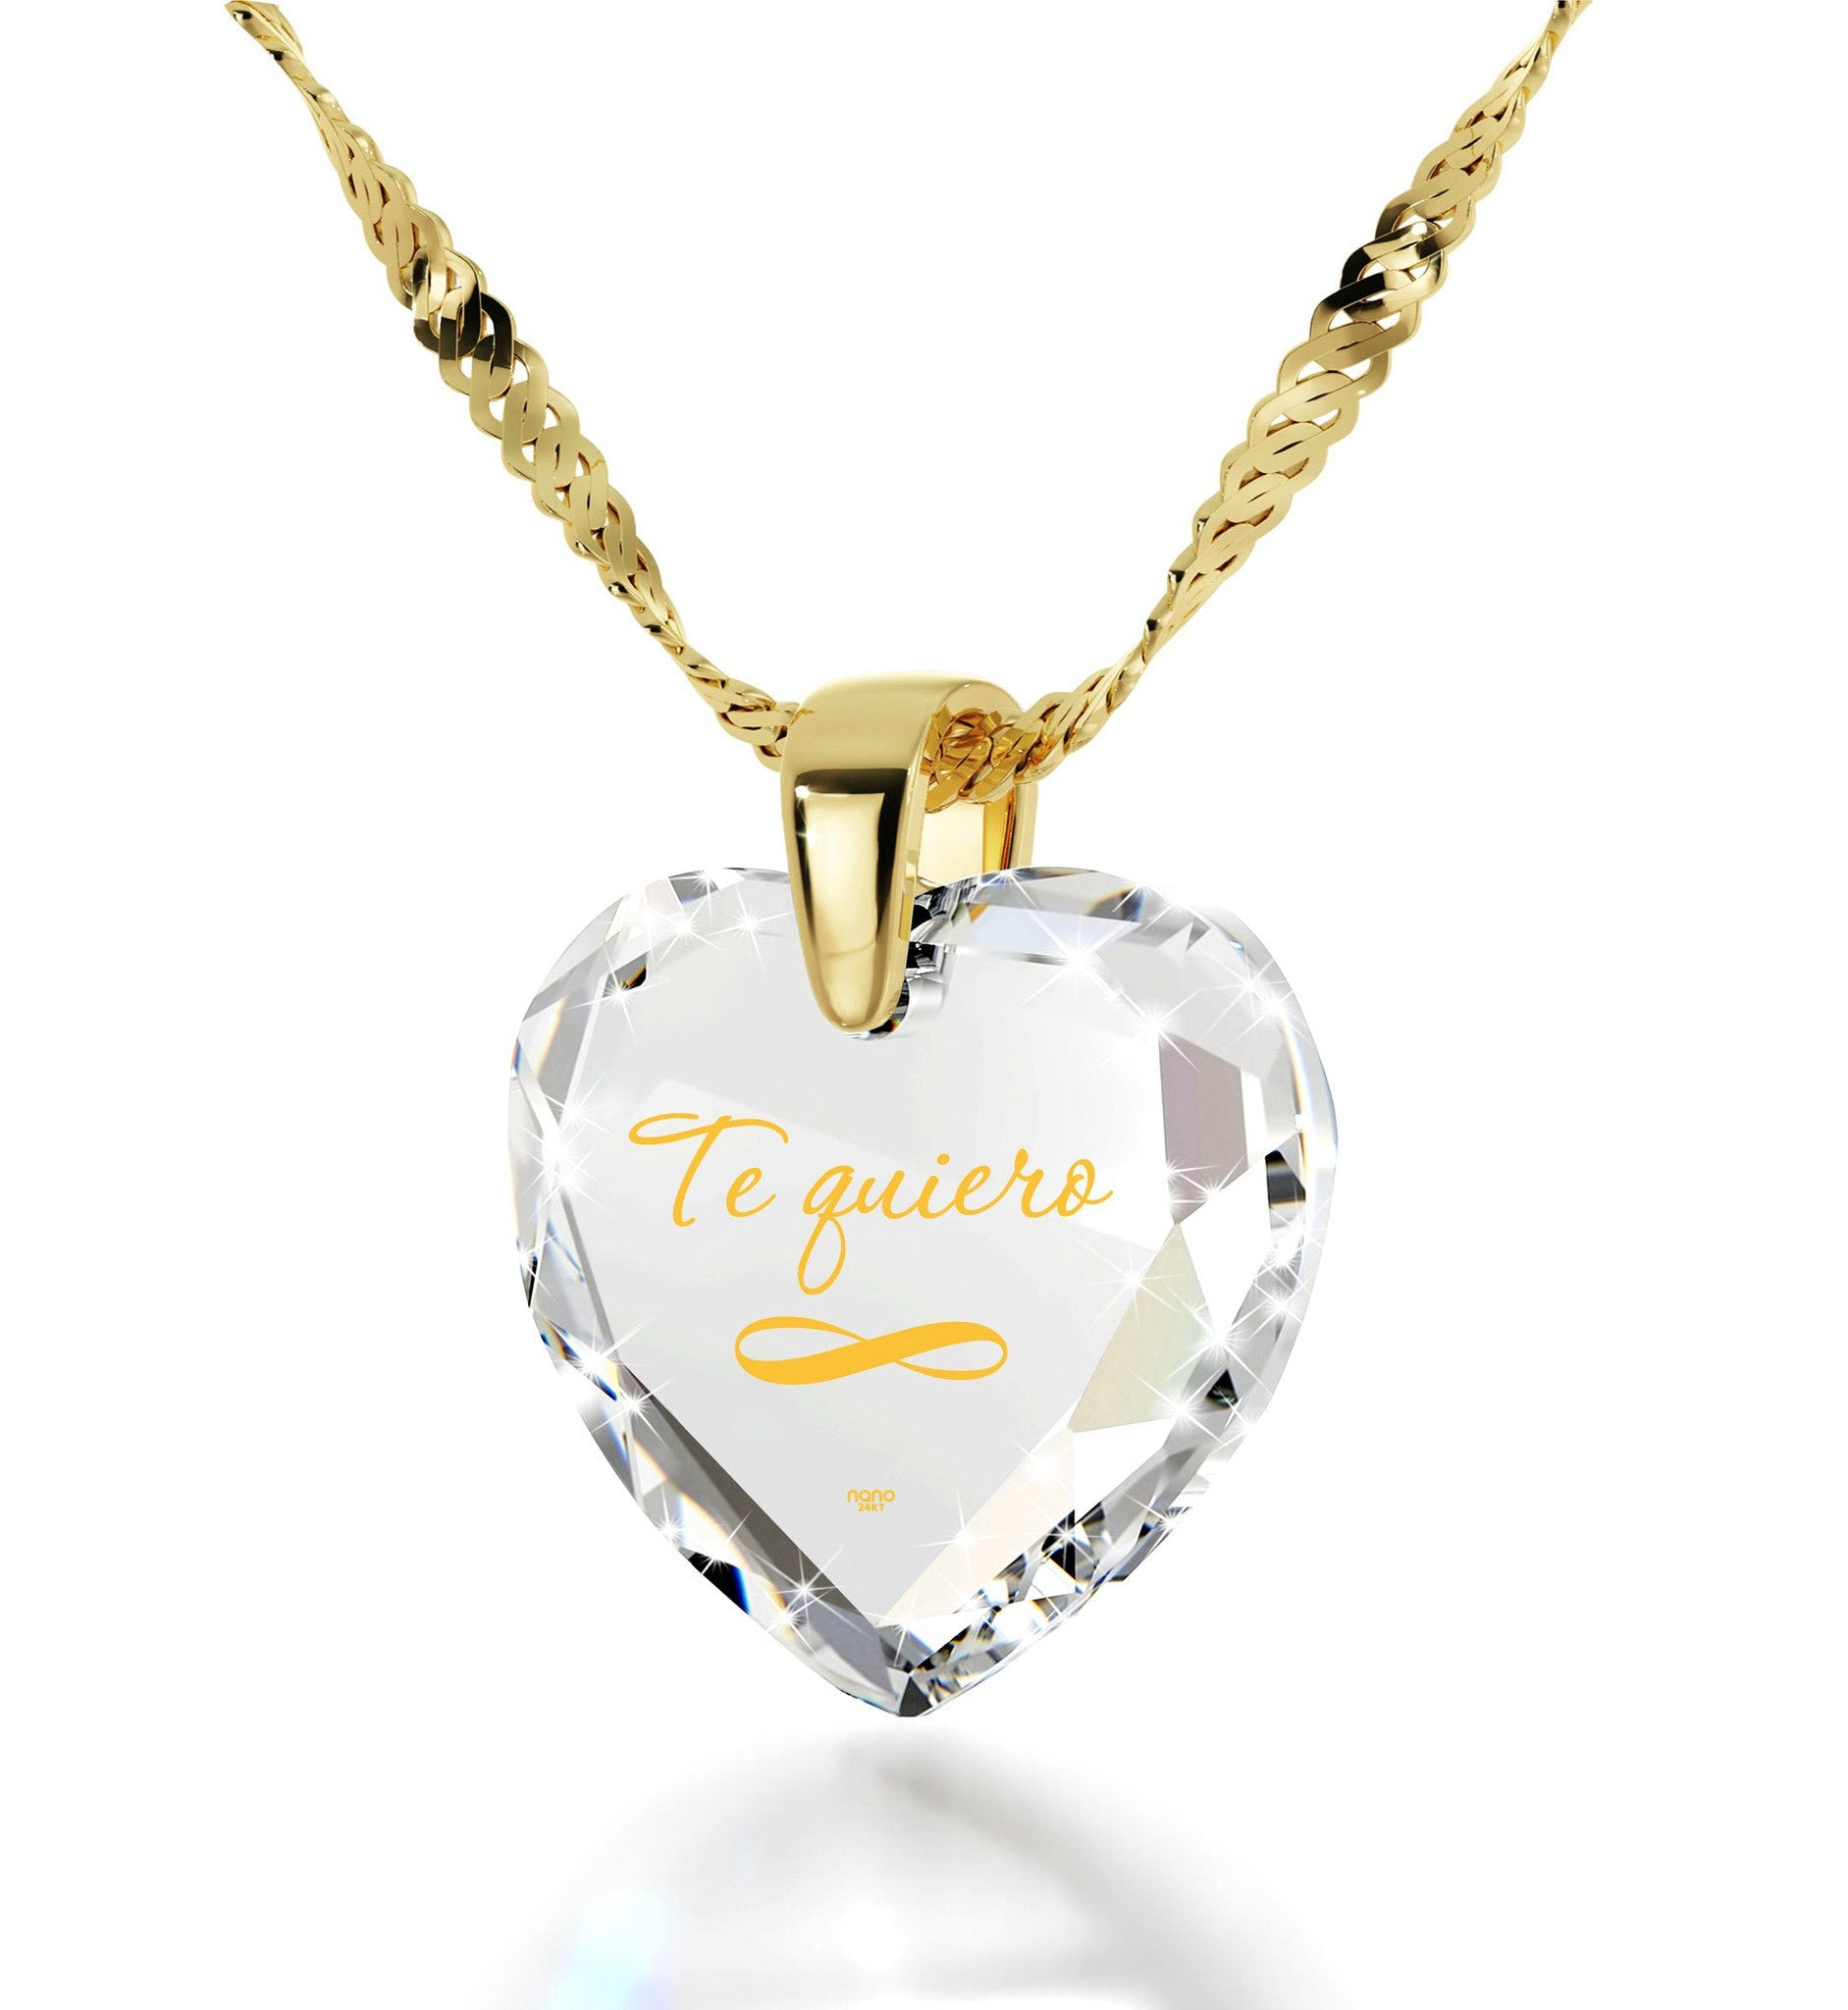 """ValentinesDayPresents,""TeQuiero"",""I Love You"" in Spanish,HeartNecklaceBirthdayPresent for Girlfriend"""